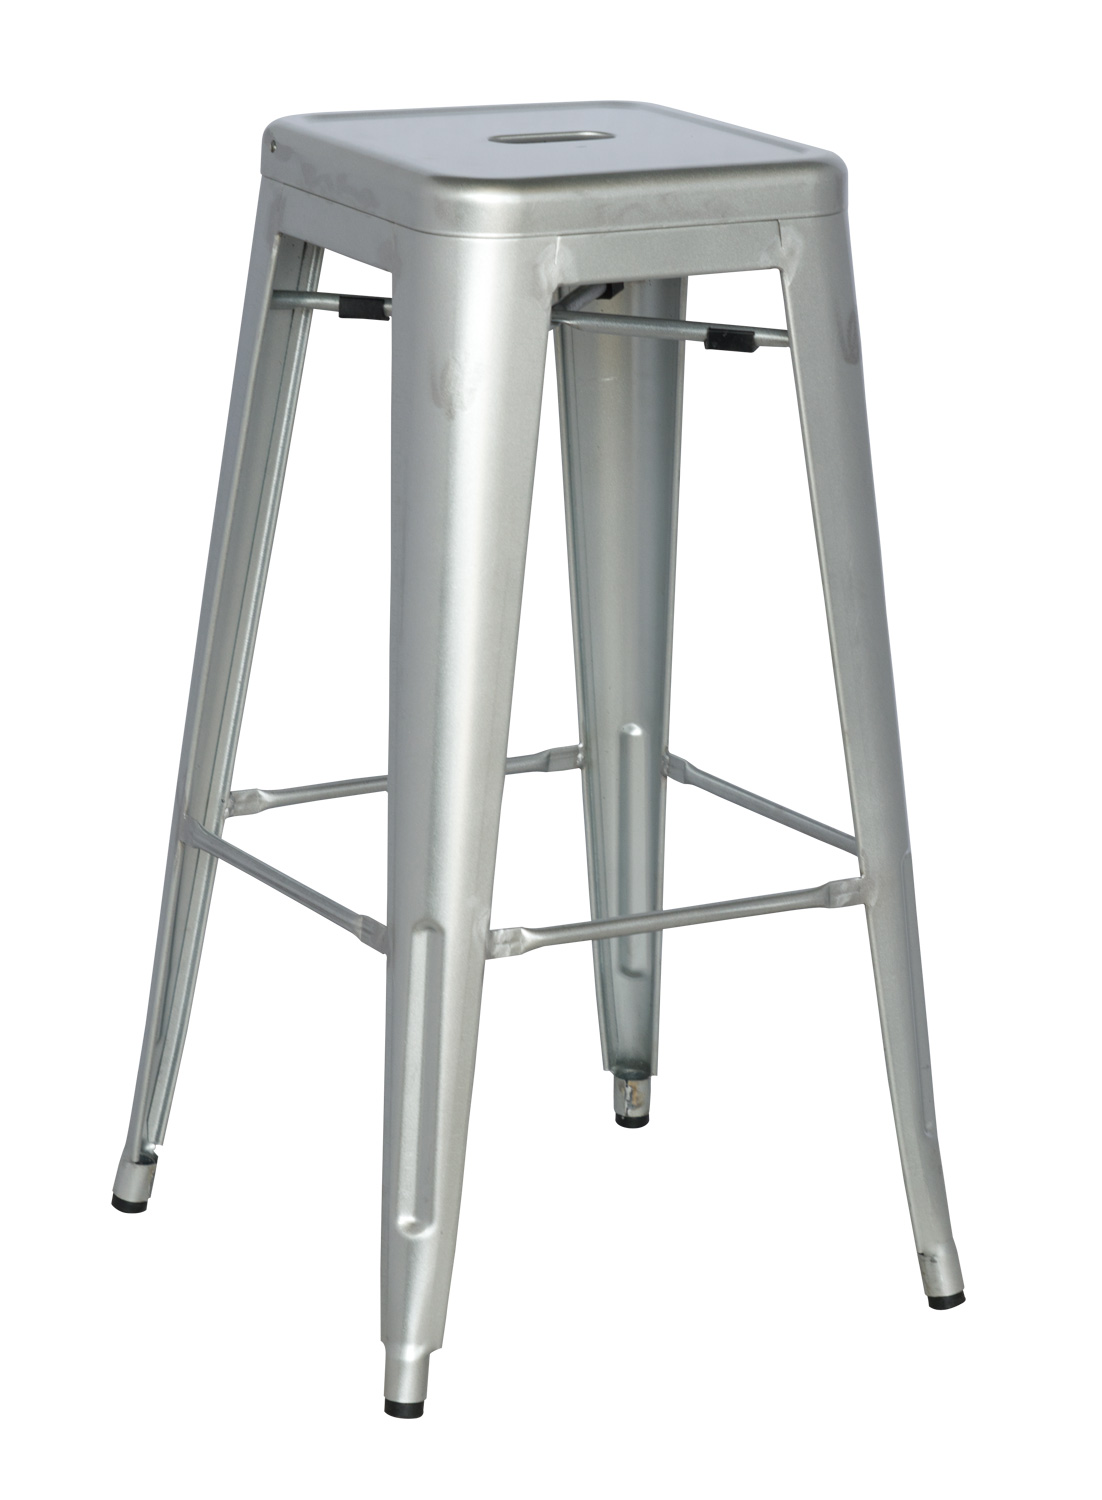 Chintaly Imports 8015 Galvanized Steel Bar Stool - Shiny Silver